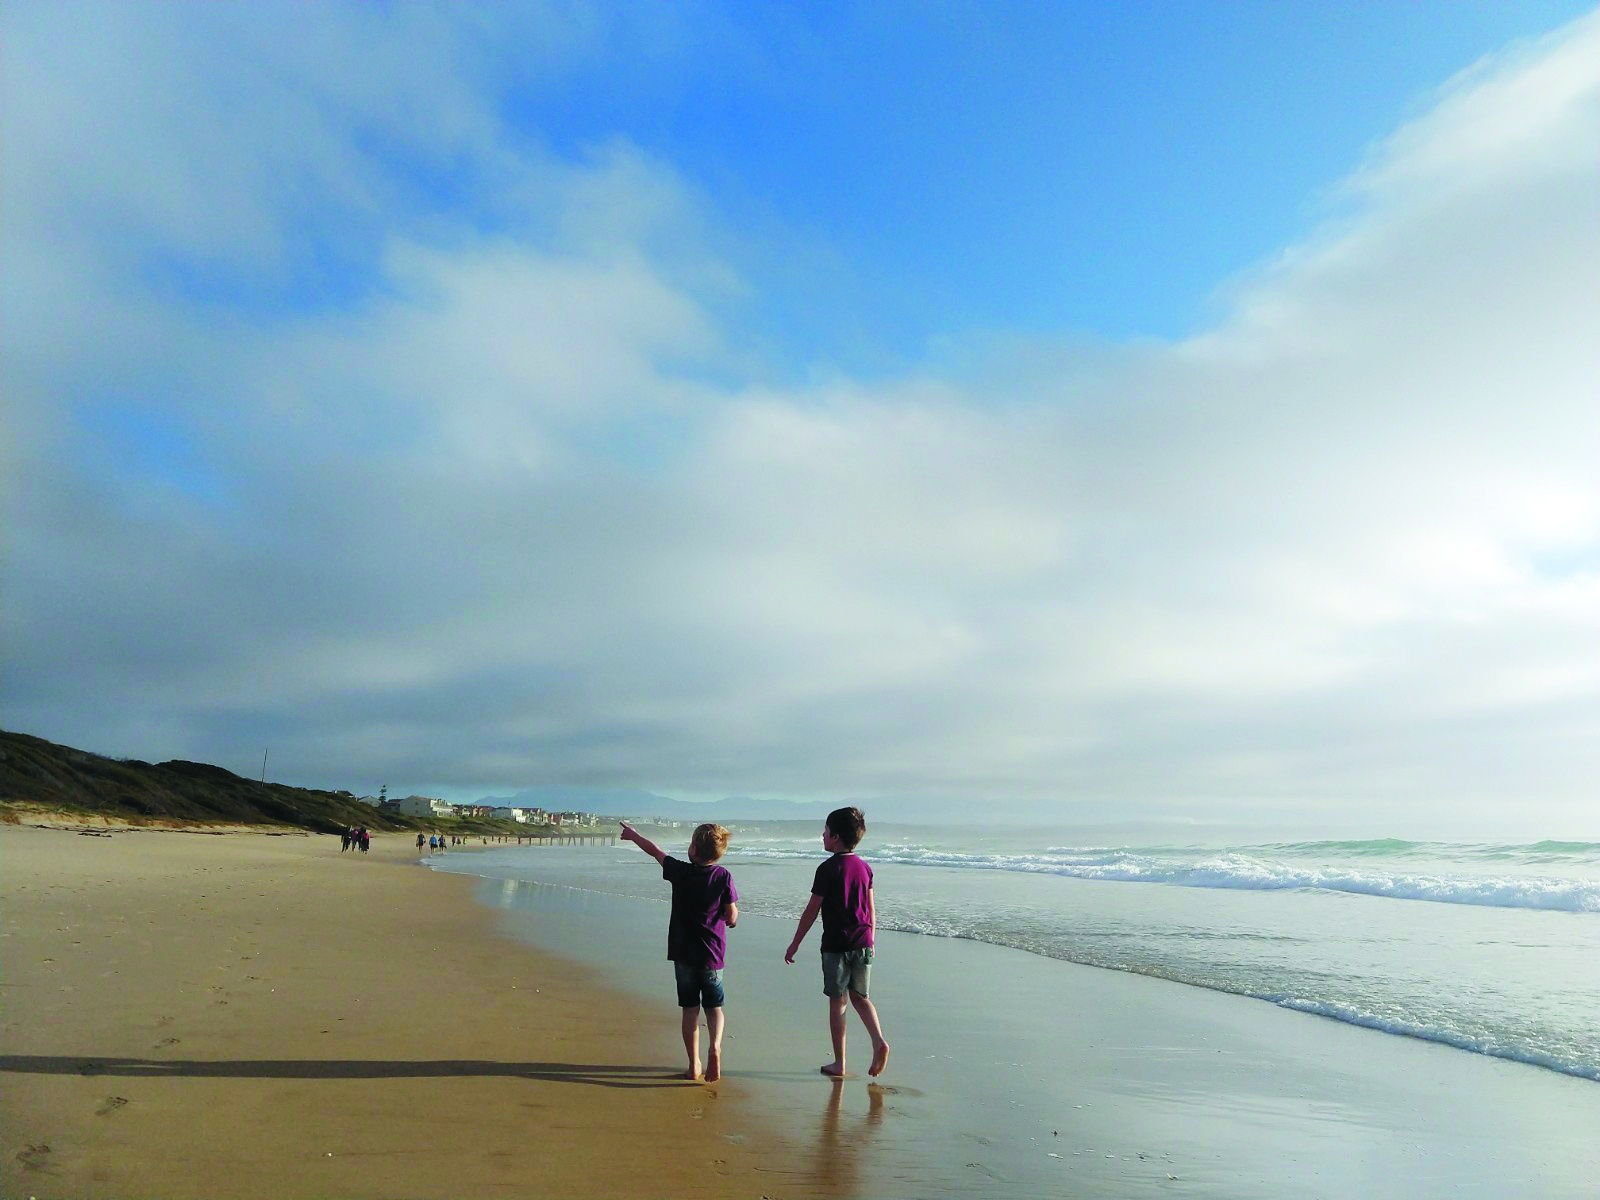 Two young boys walking along a beach, one pointing at something in the distance to the other. Wispy clouds cover part of the bright blue sky!